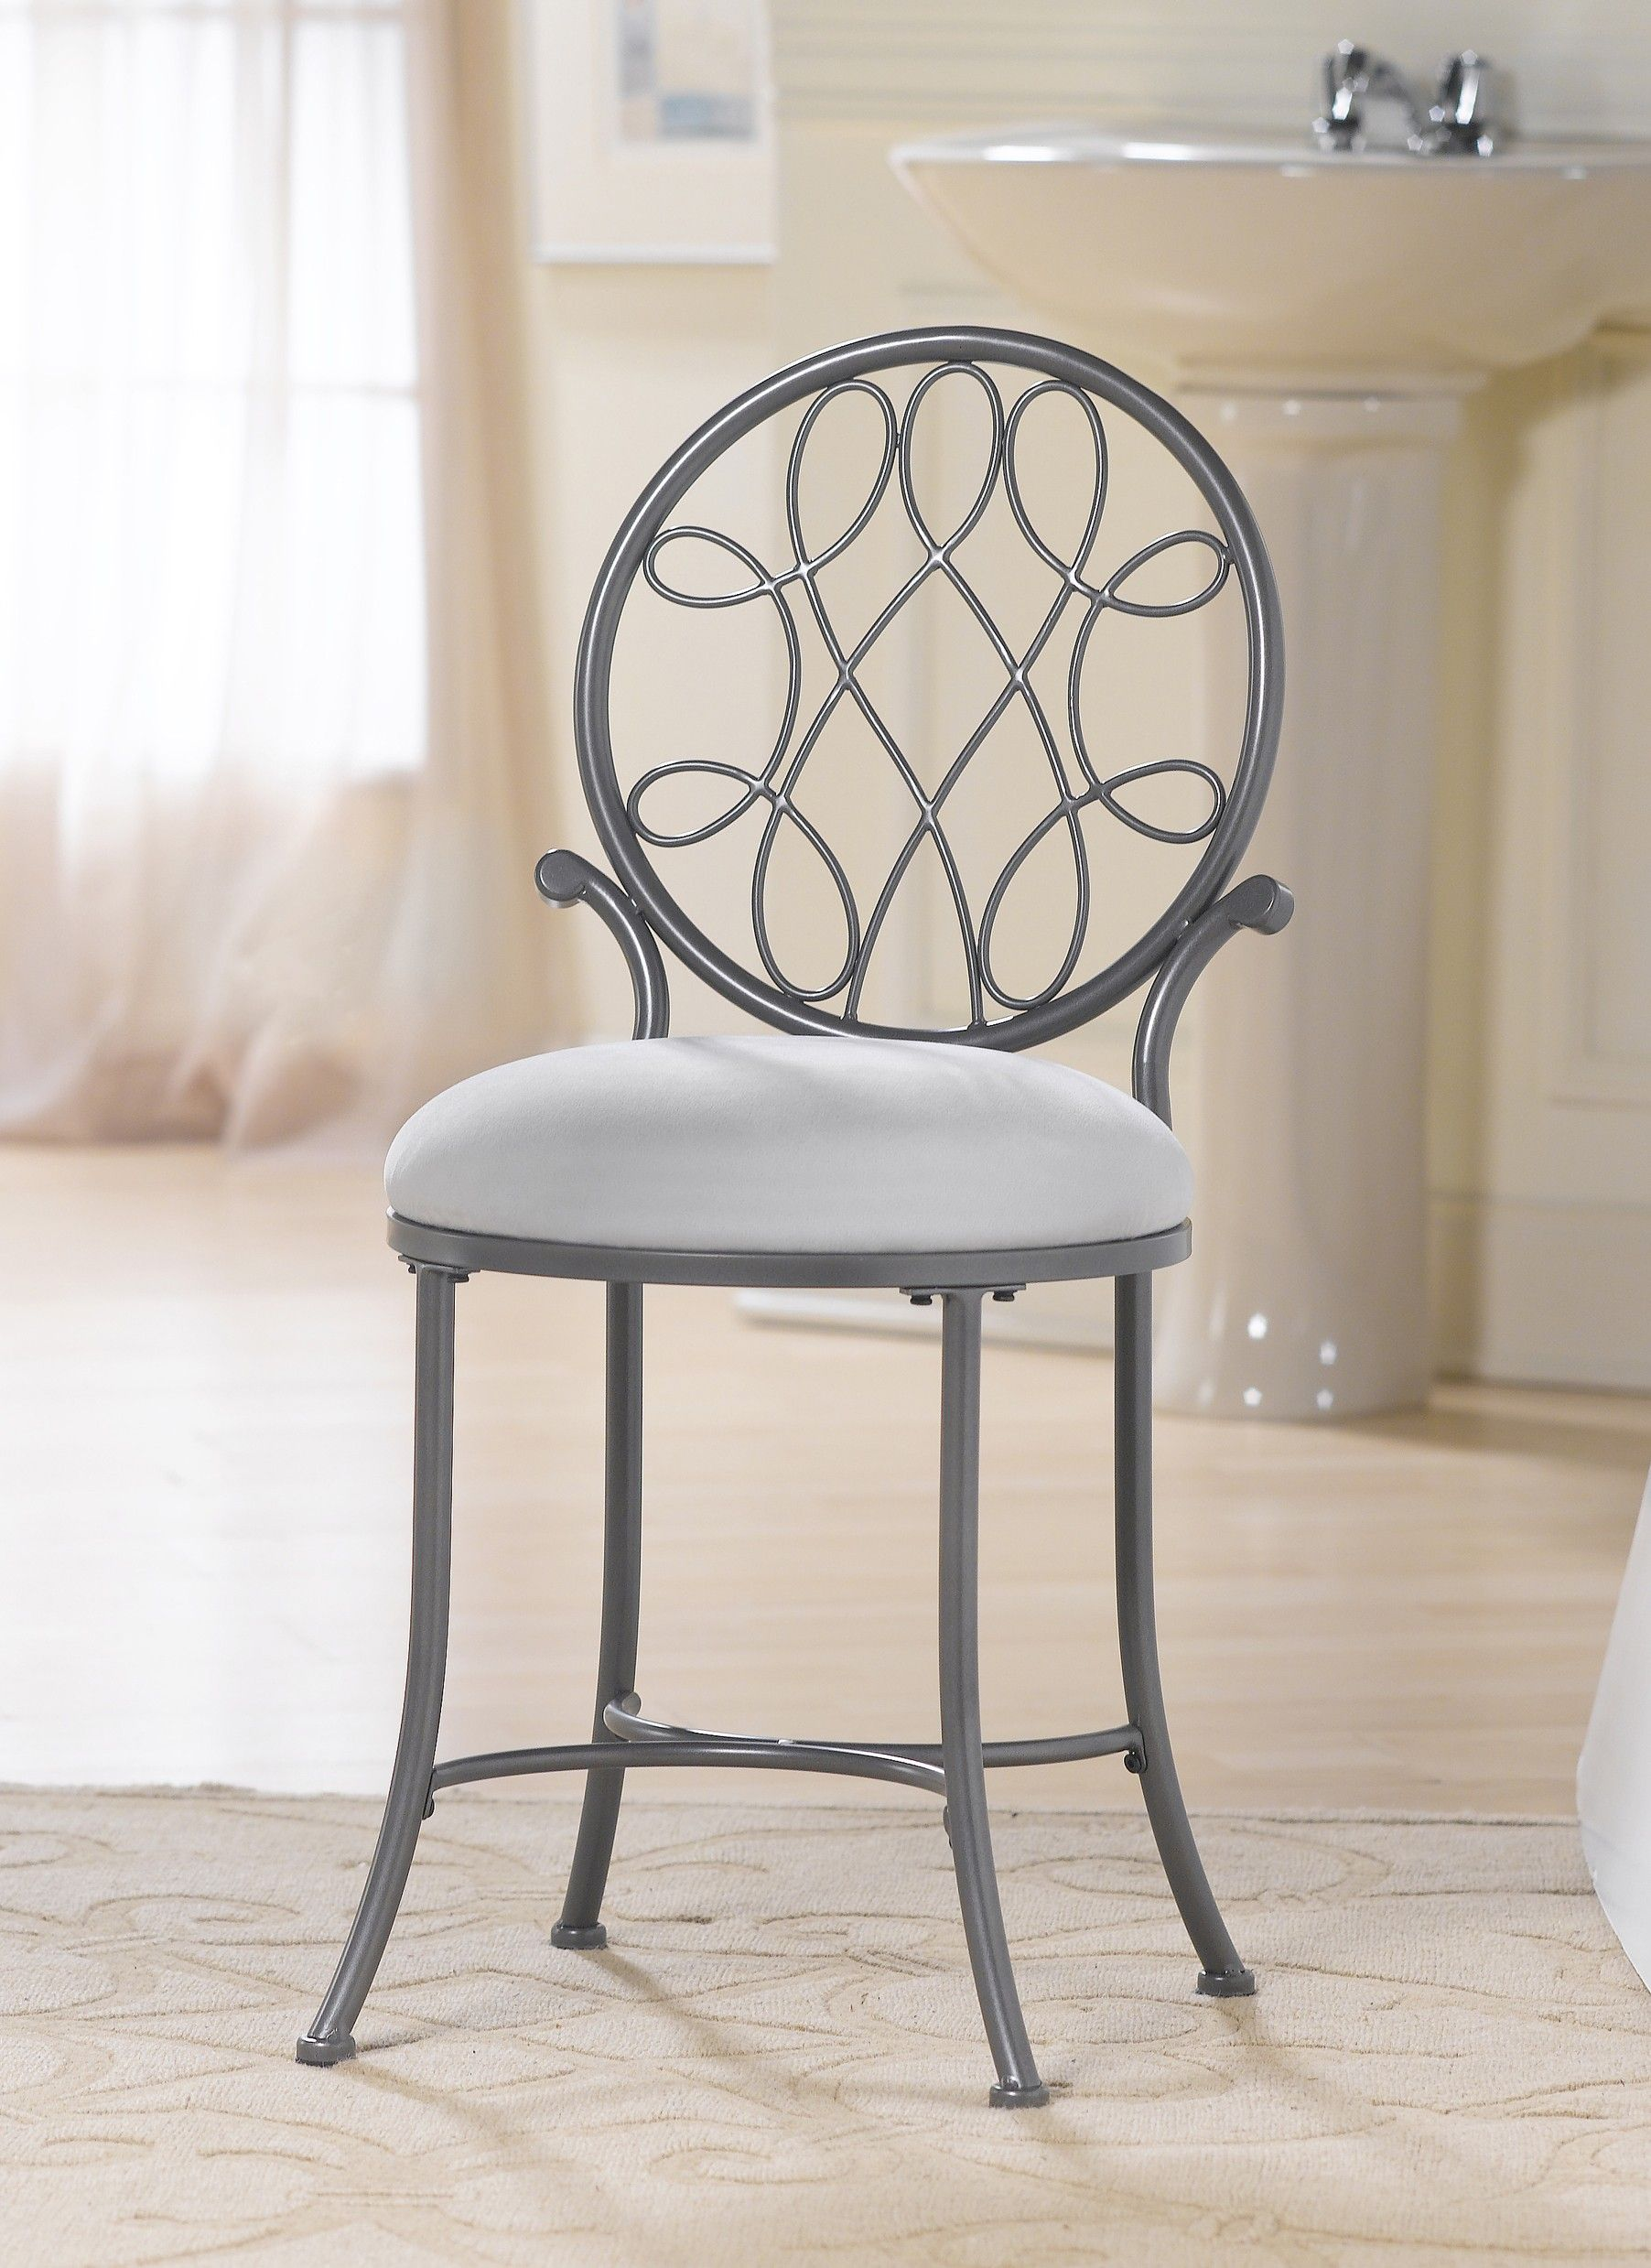 Bathroom Furniture Gray Polished Wrought Iron Vanity Chair With ...